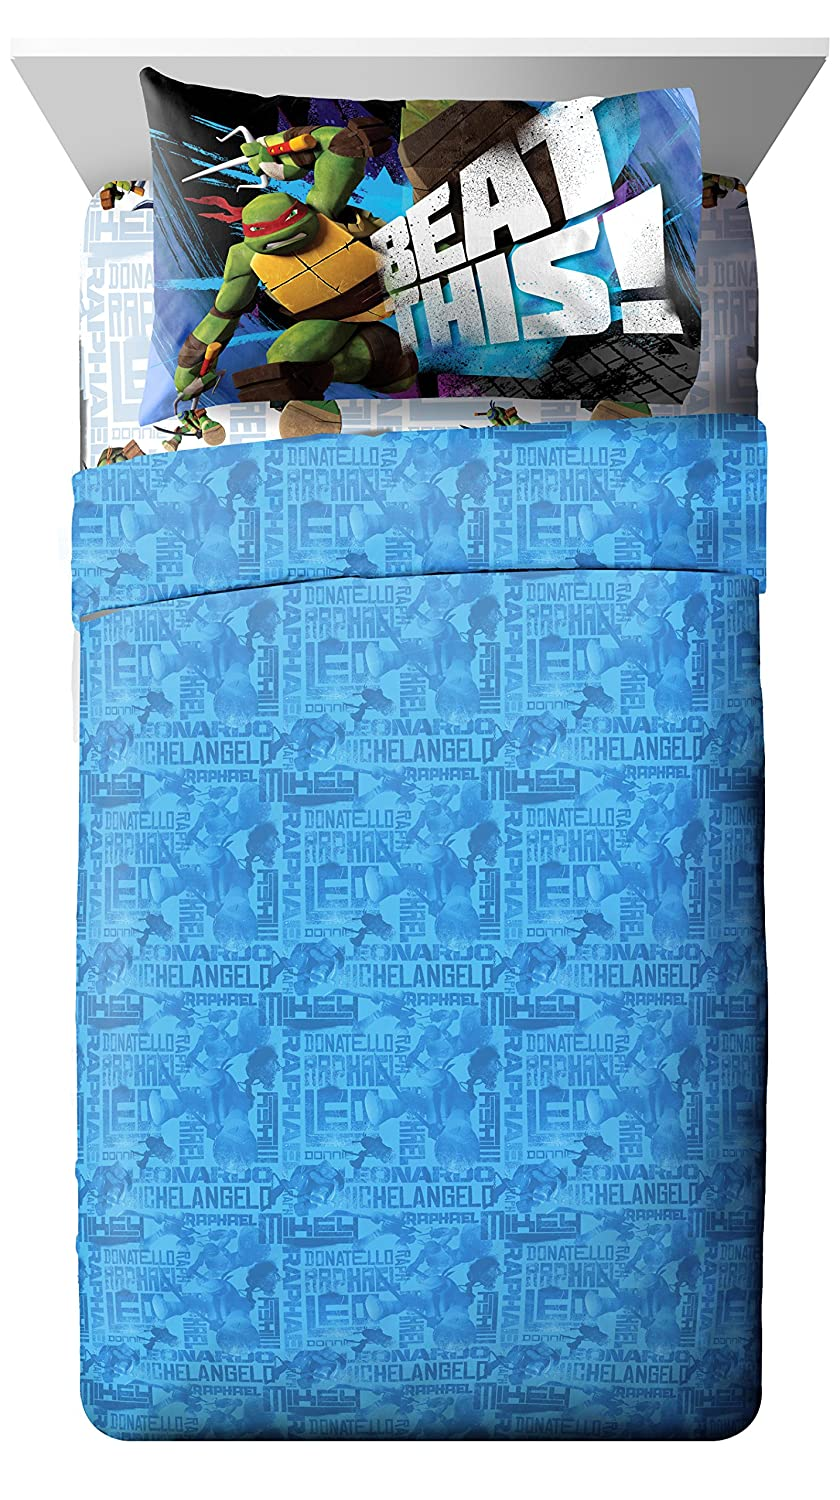 Nickelodeon Teenage Mutant Ninja Turtles Heroes Sheet Set, Full